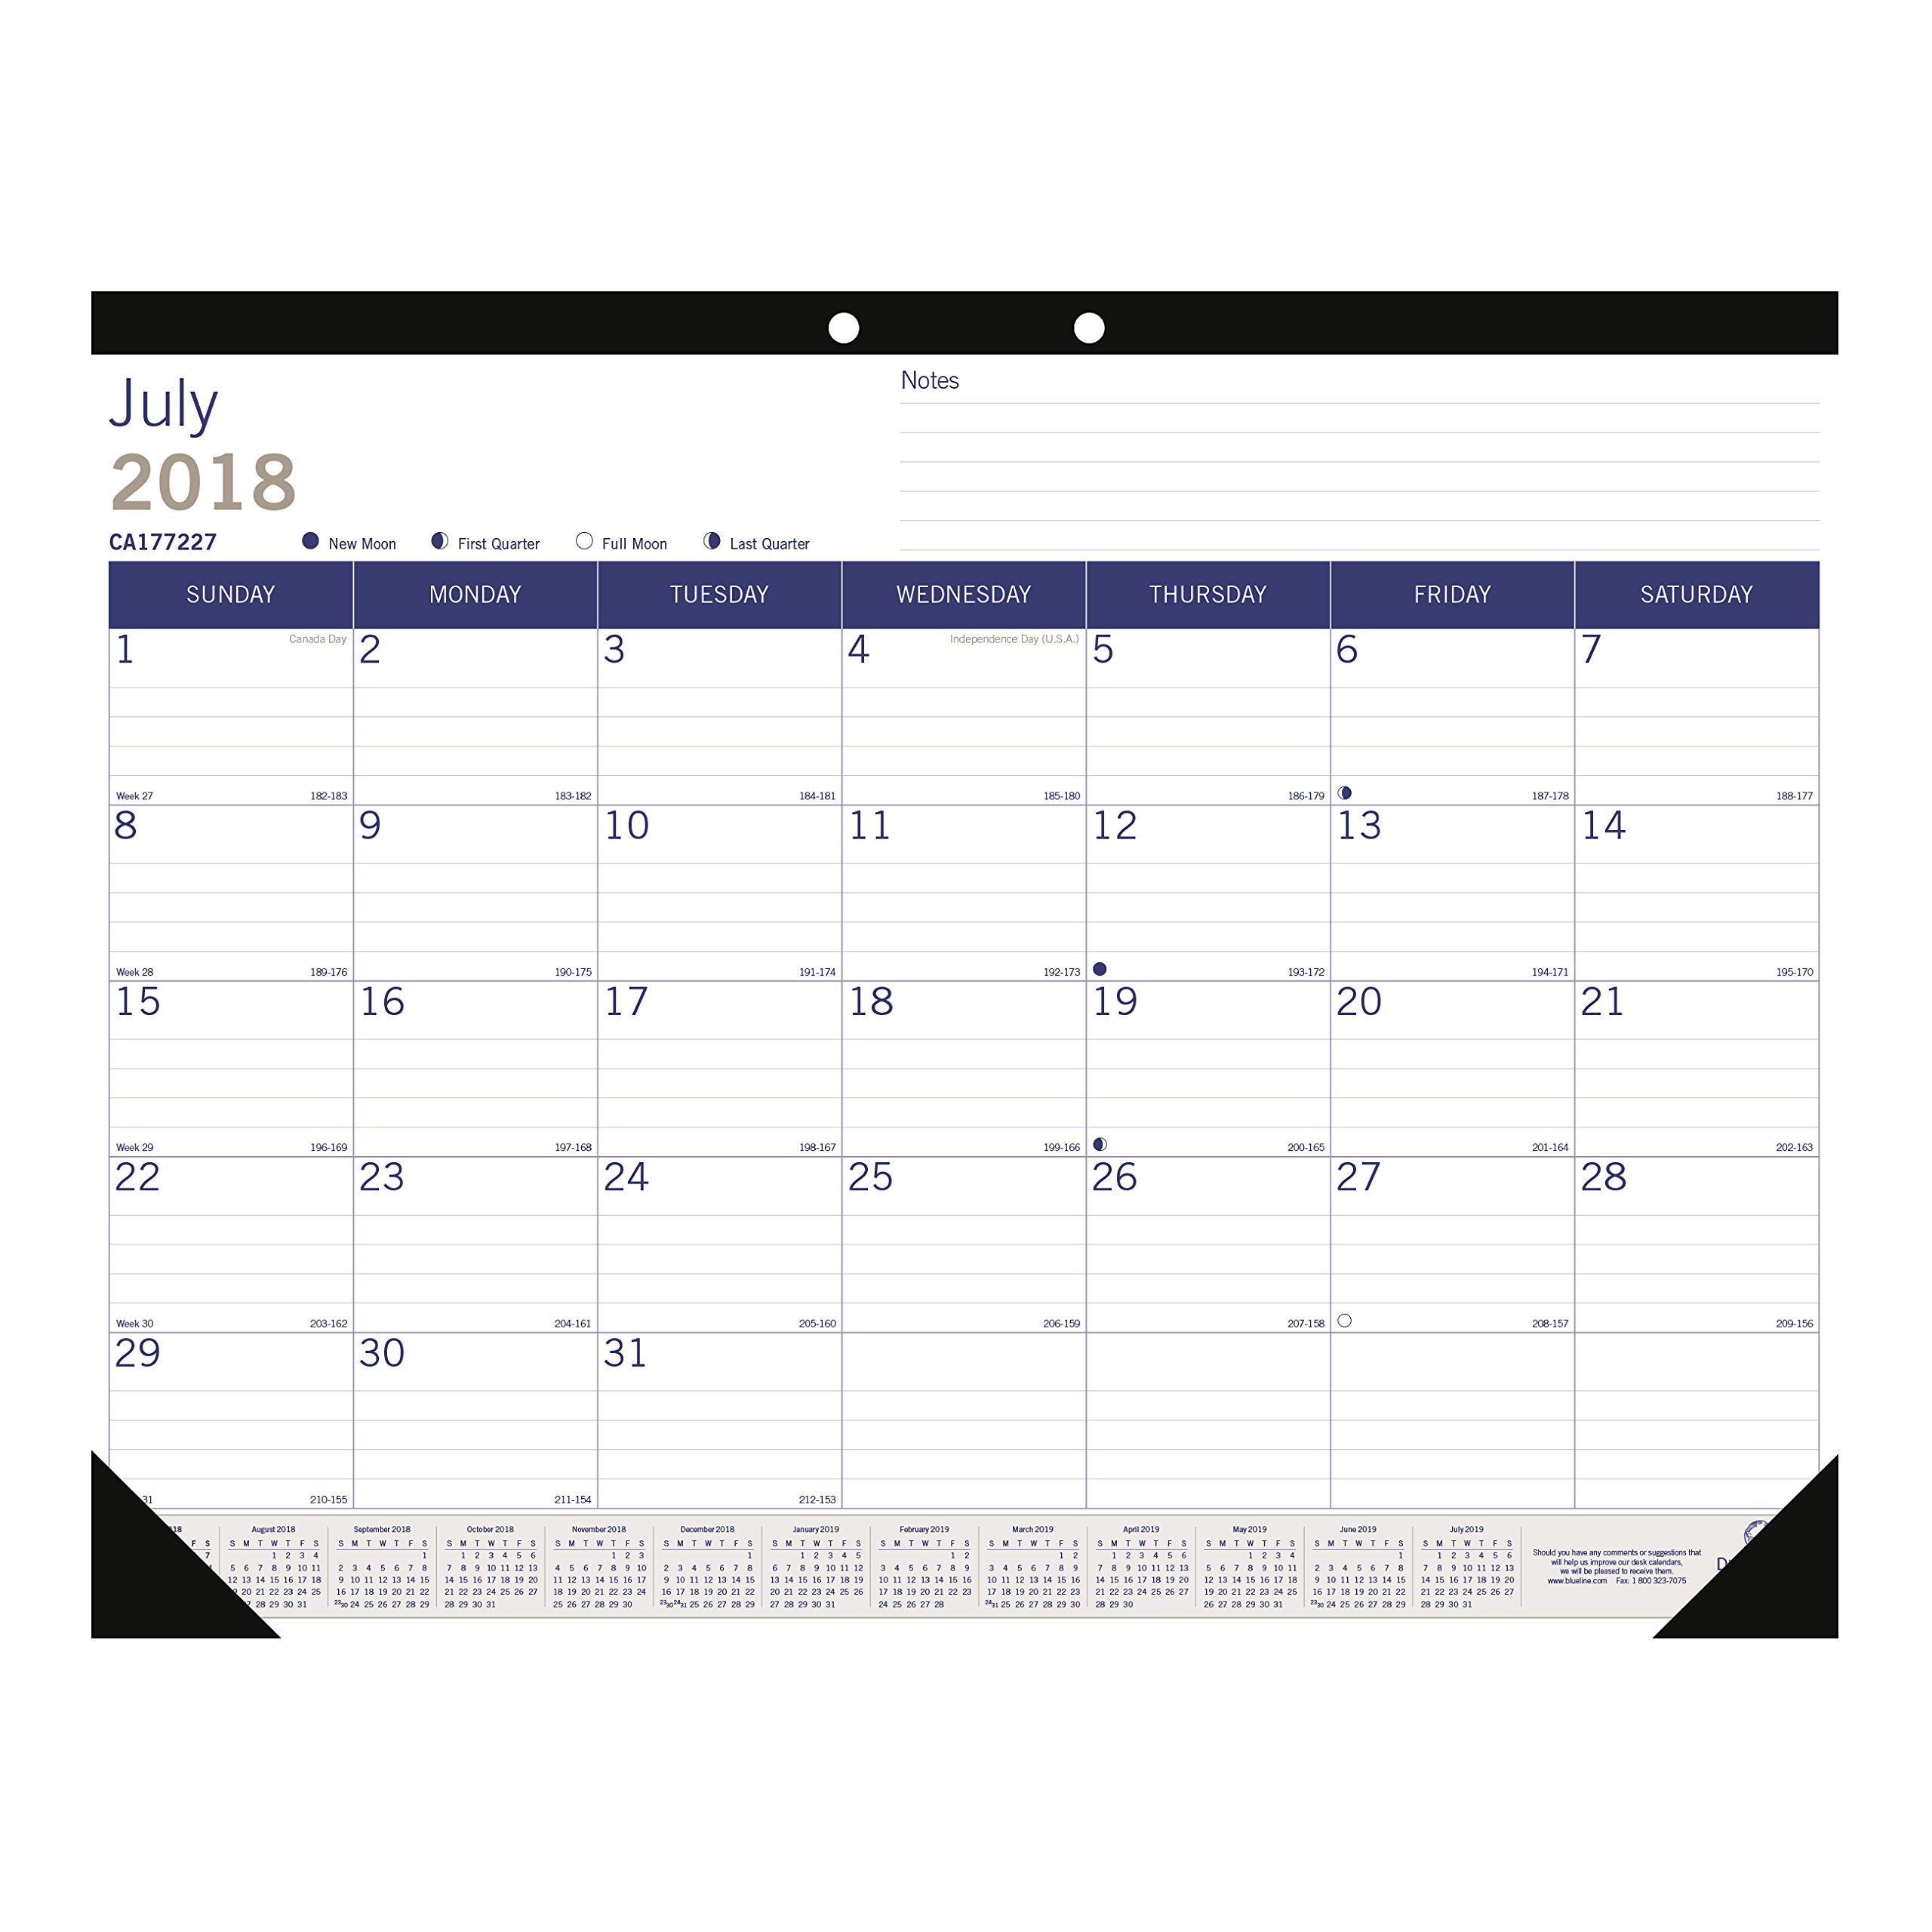 Blueline DuraGlobe Monthly Desk Pad Calendar, Academic, 13-Month, July 2018 to July 2019, 22 x 17 inches (CA177227-19)